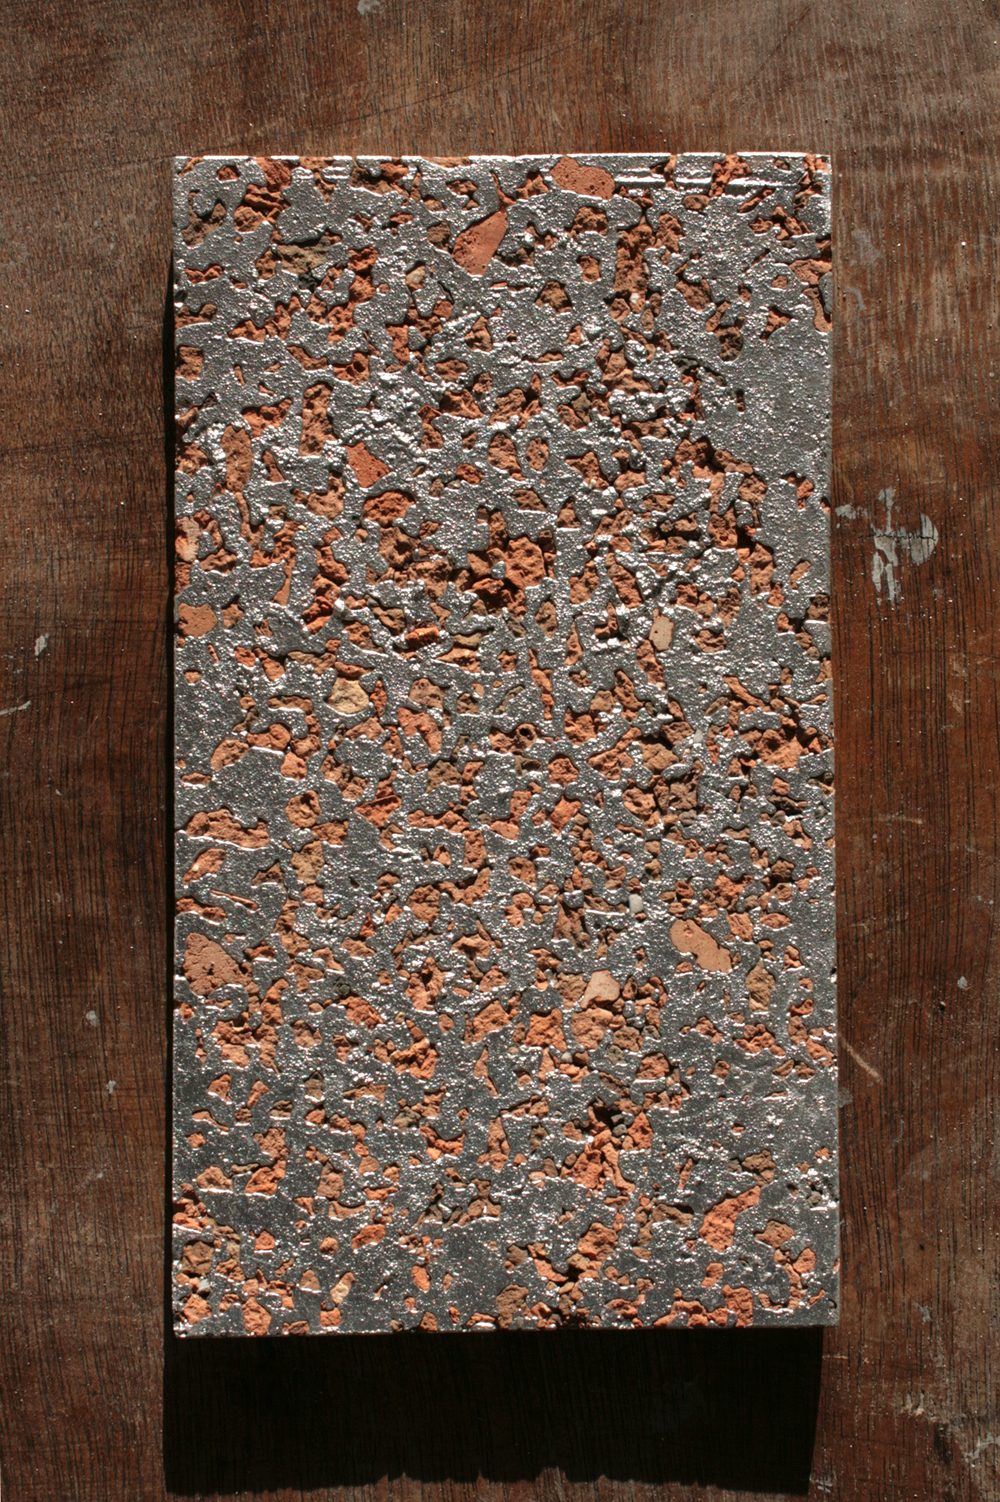 Recycled Aluminum, Demolition Brick